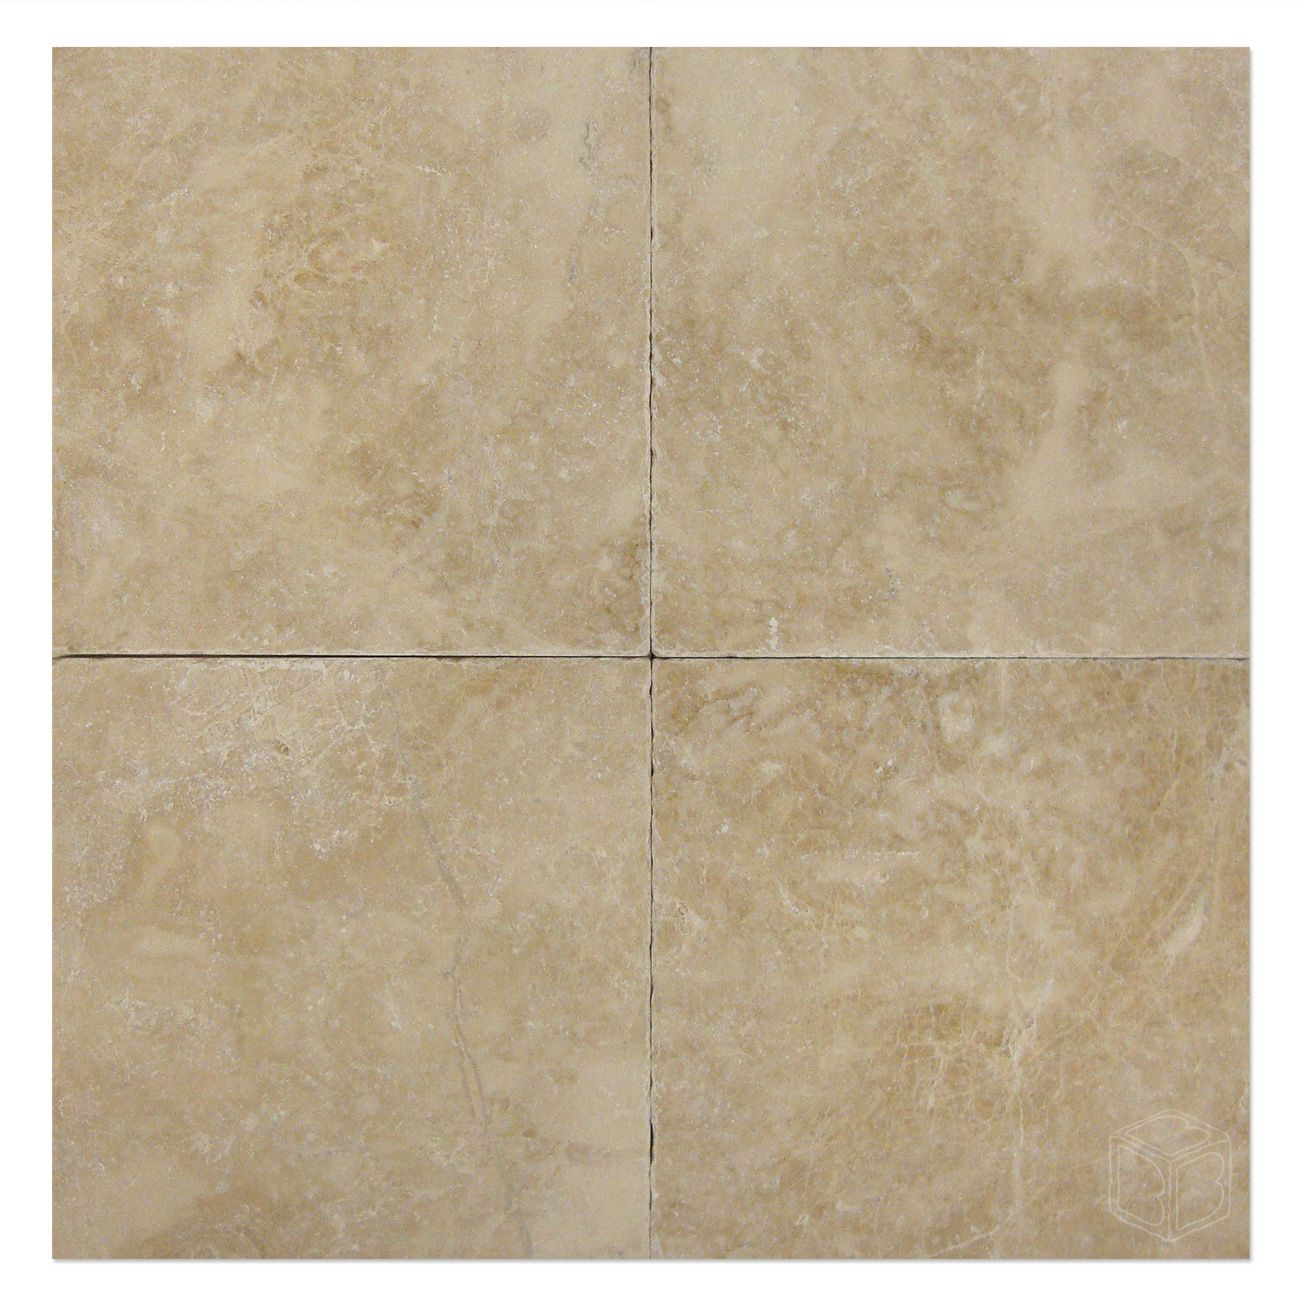 12x12 Cappuccino Tumbled Tumbled Marble Tile Travertine Floor Tile Travertine Floors